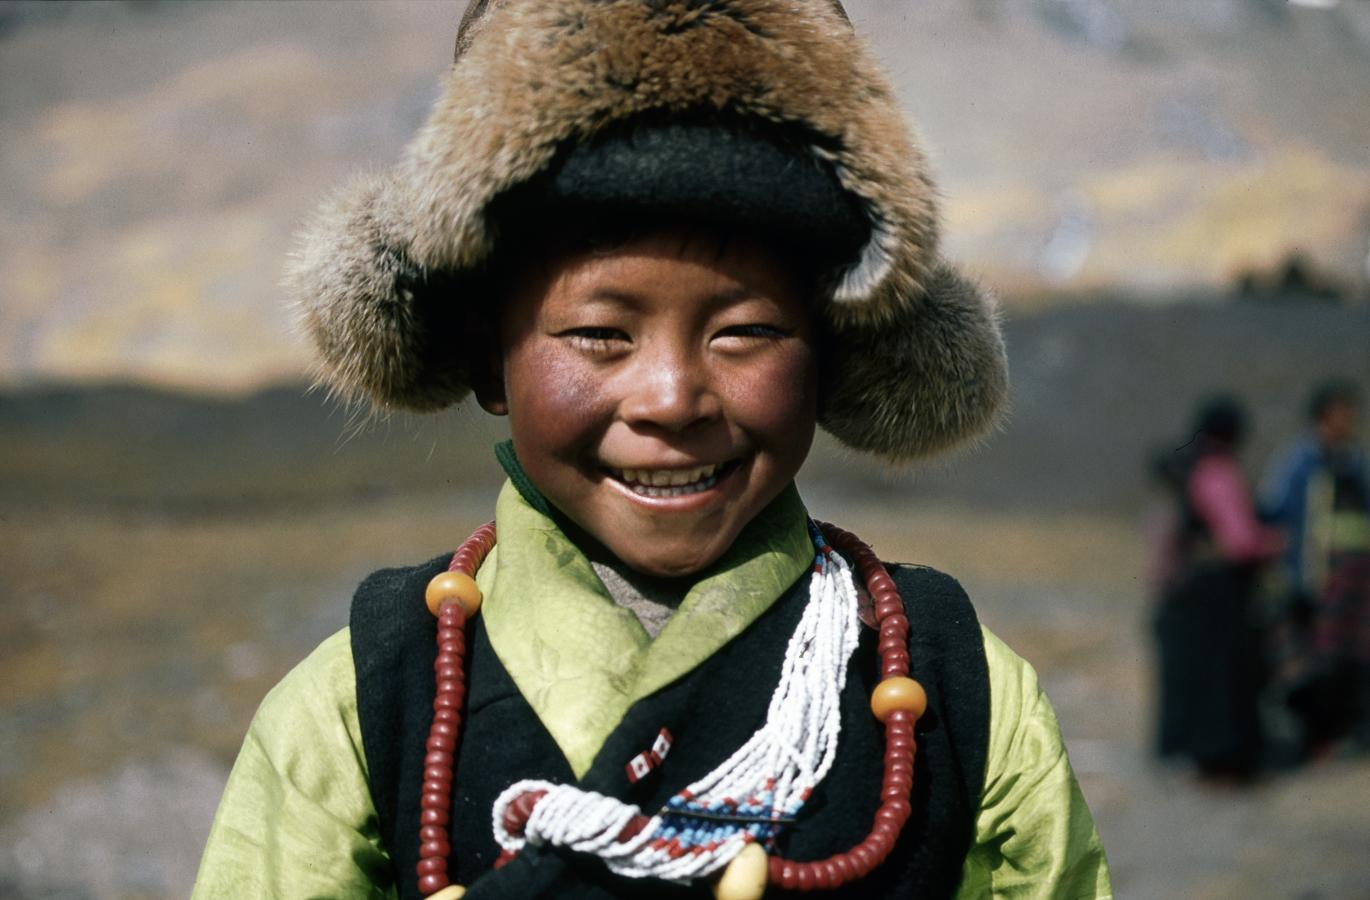 tibetan-boy-at-the-kharola-glacier-tibet-2000